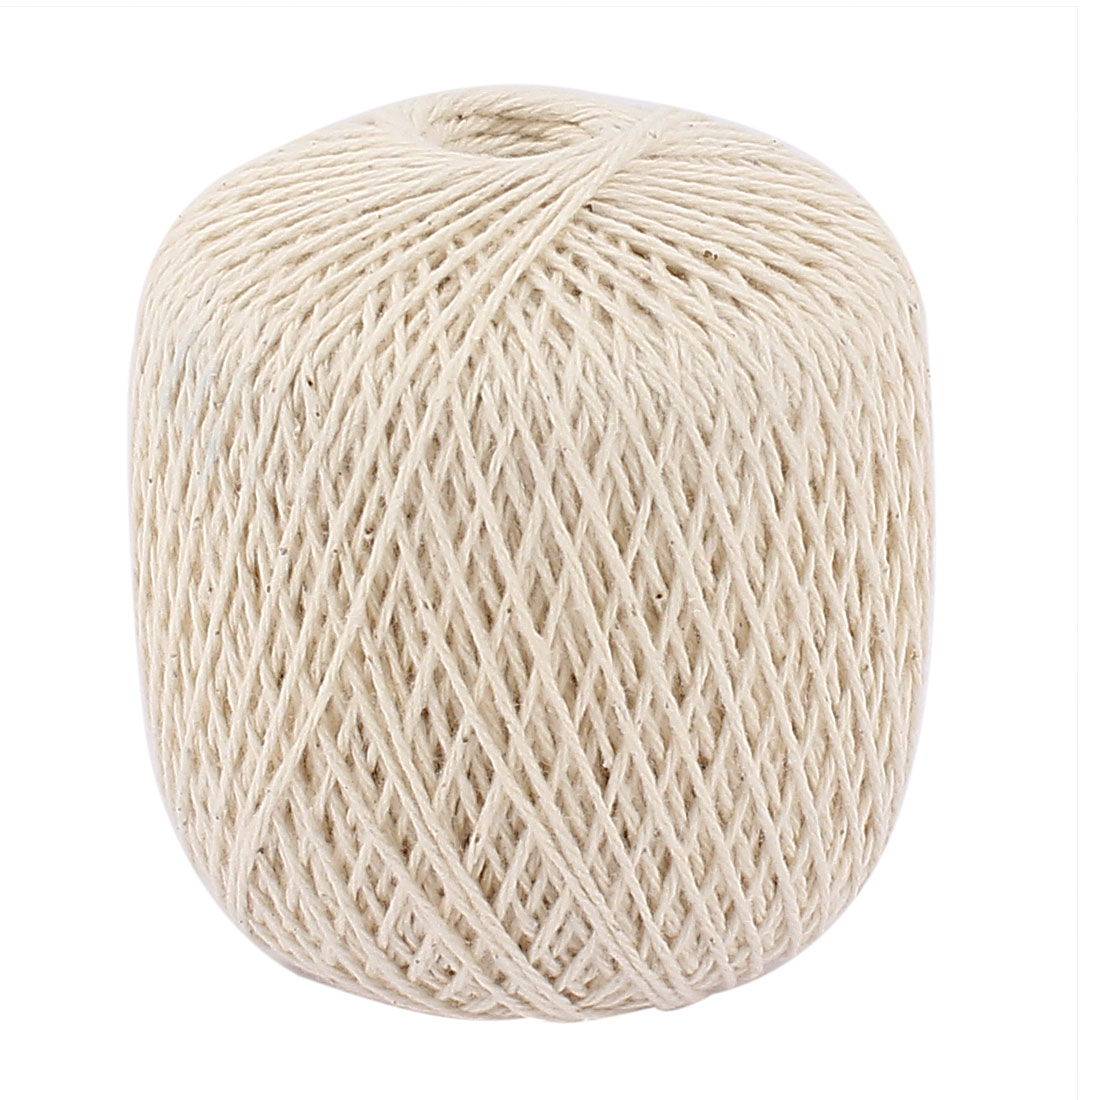 Beige Cotton Packaging Label Binding Sewing Twine String Rope 100M